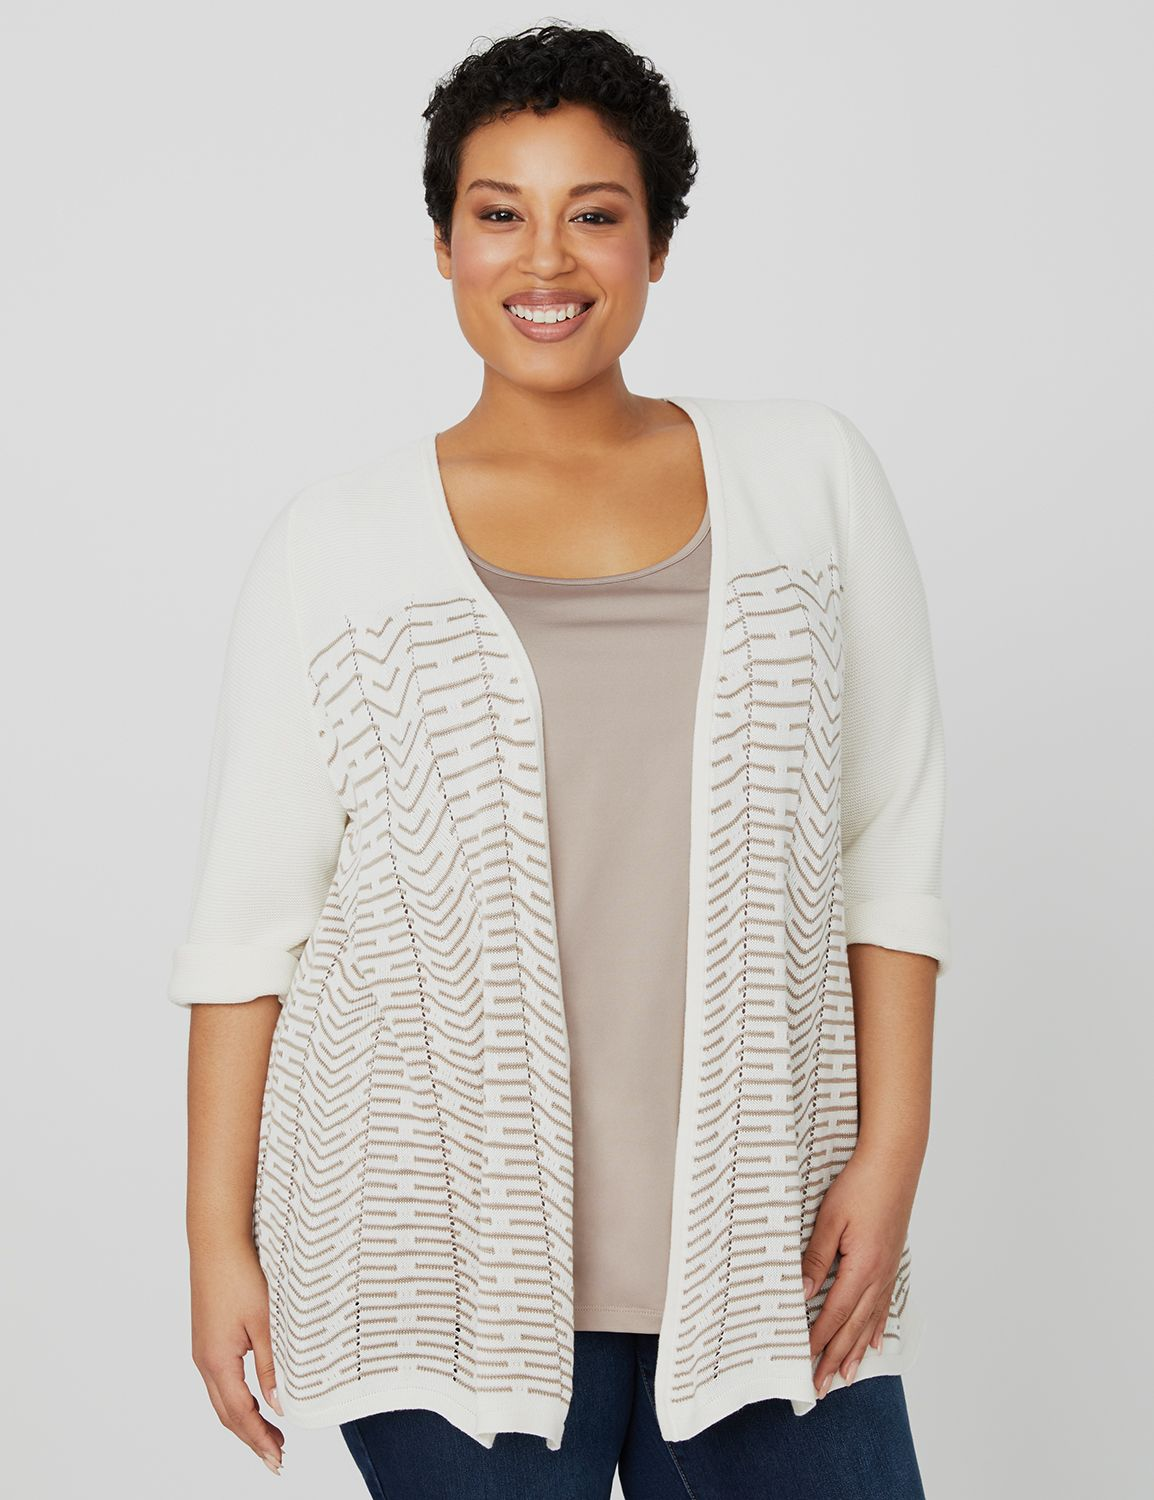 Peaceful Wave Cardigan 1087941 WaveStitch OpenCardi MP-300095850